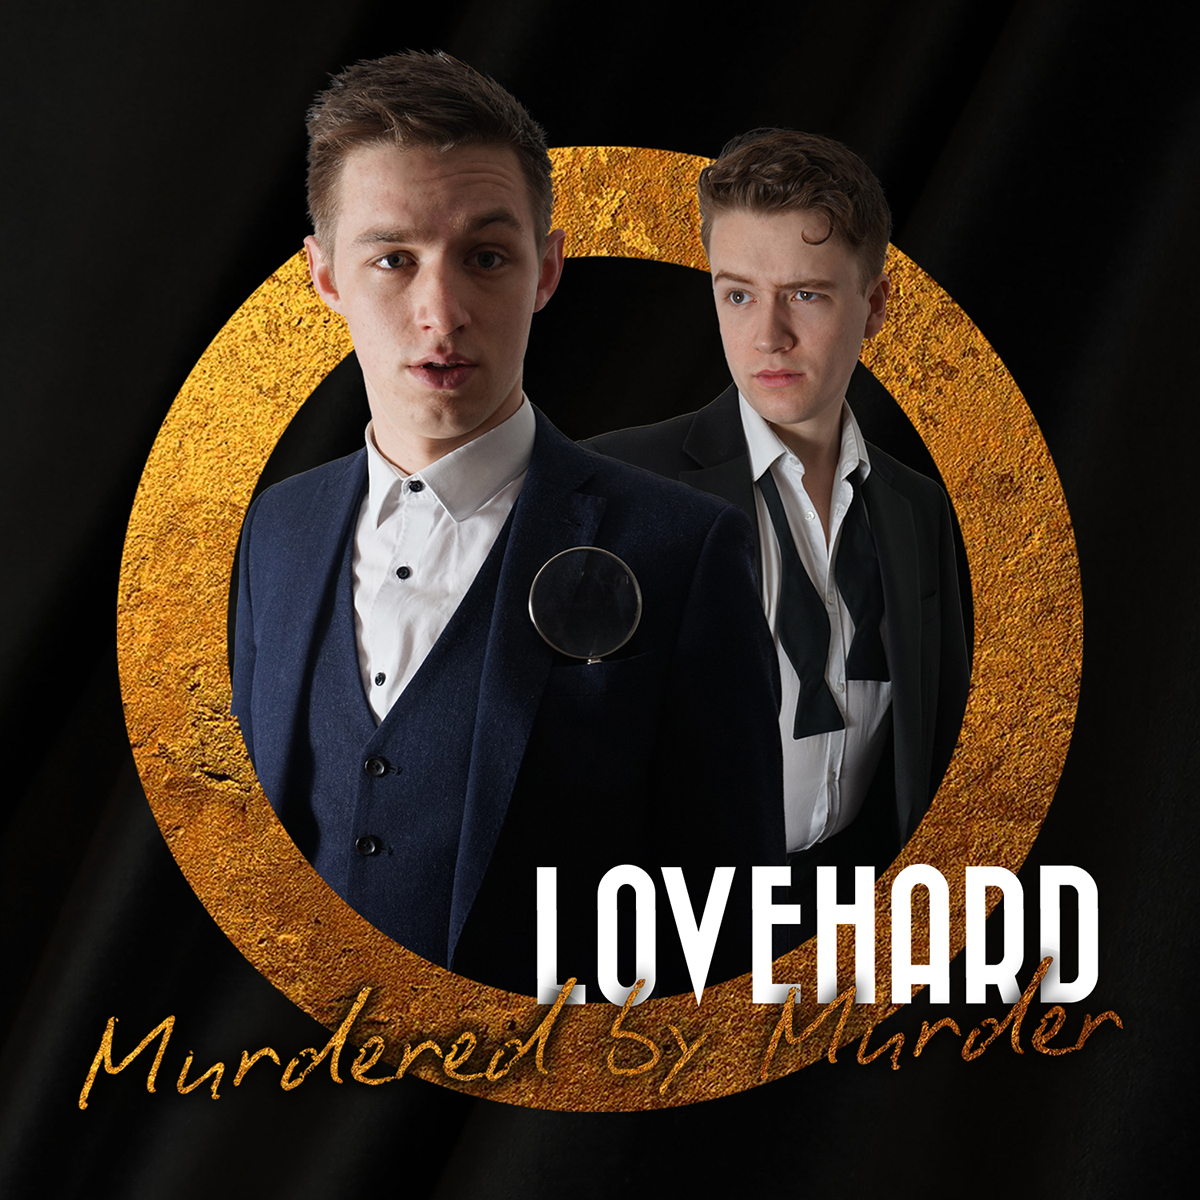 LoveHard: Murdered by Murder